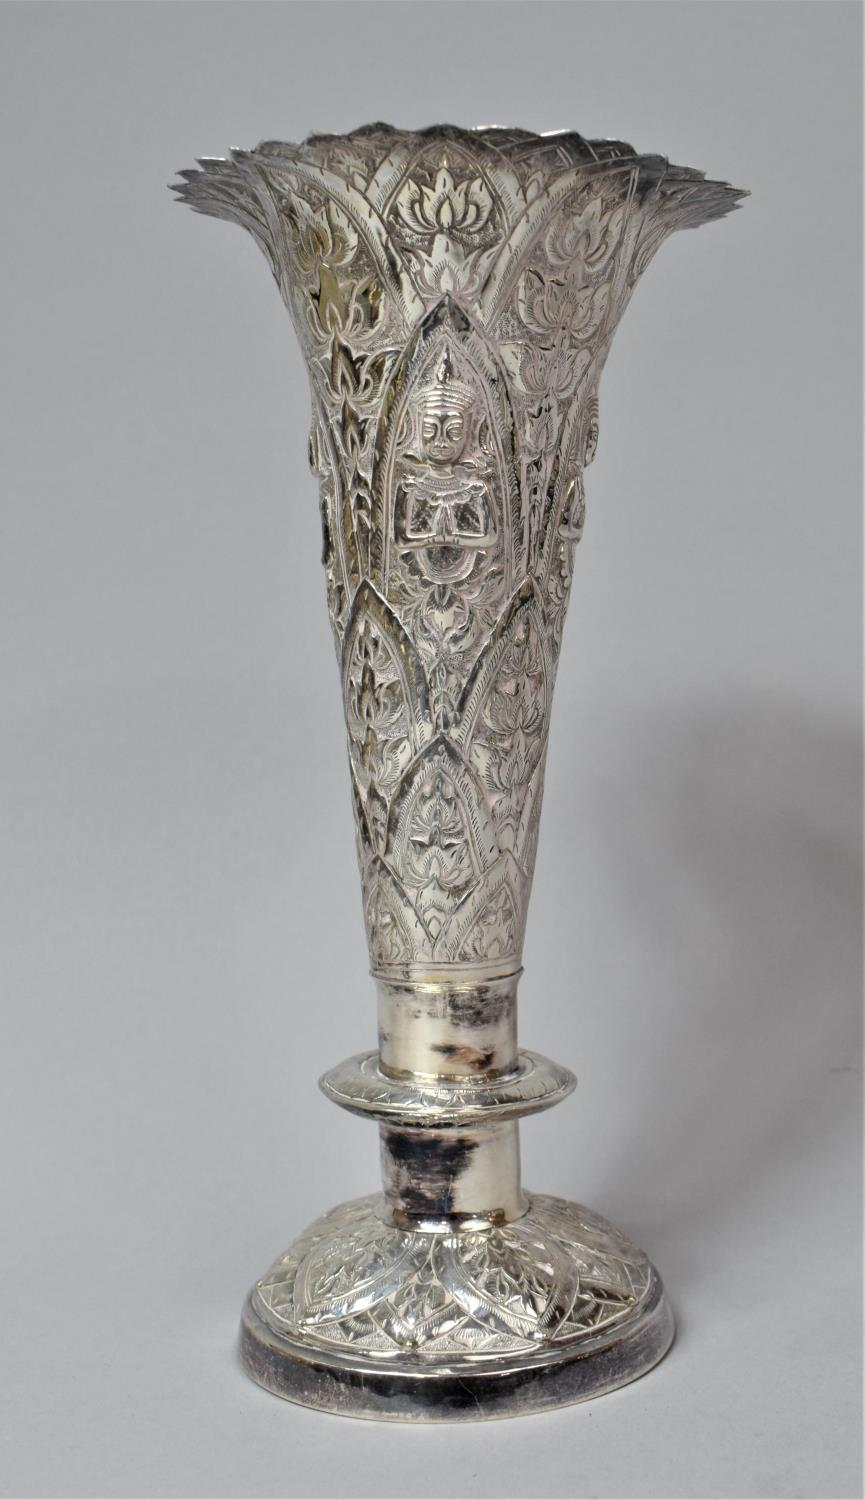 A Set of Three Indian Silver Trumpet Vases with Hand Hammered Repousse work, Depicting Namaste - Image 2 of 13